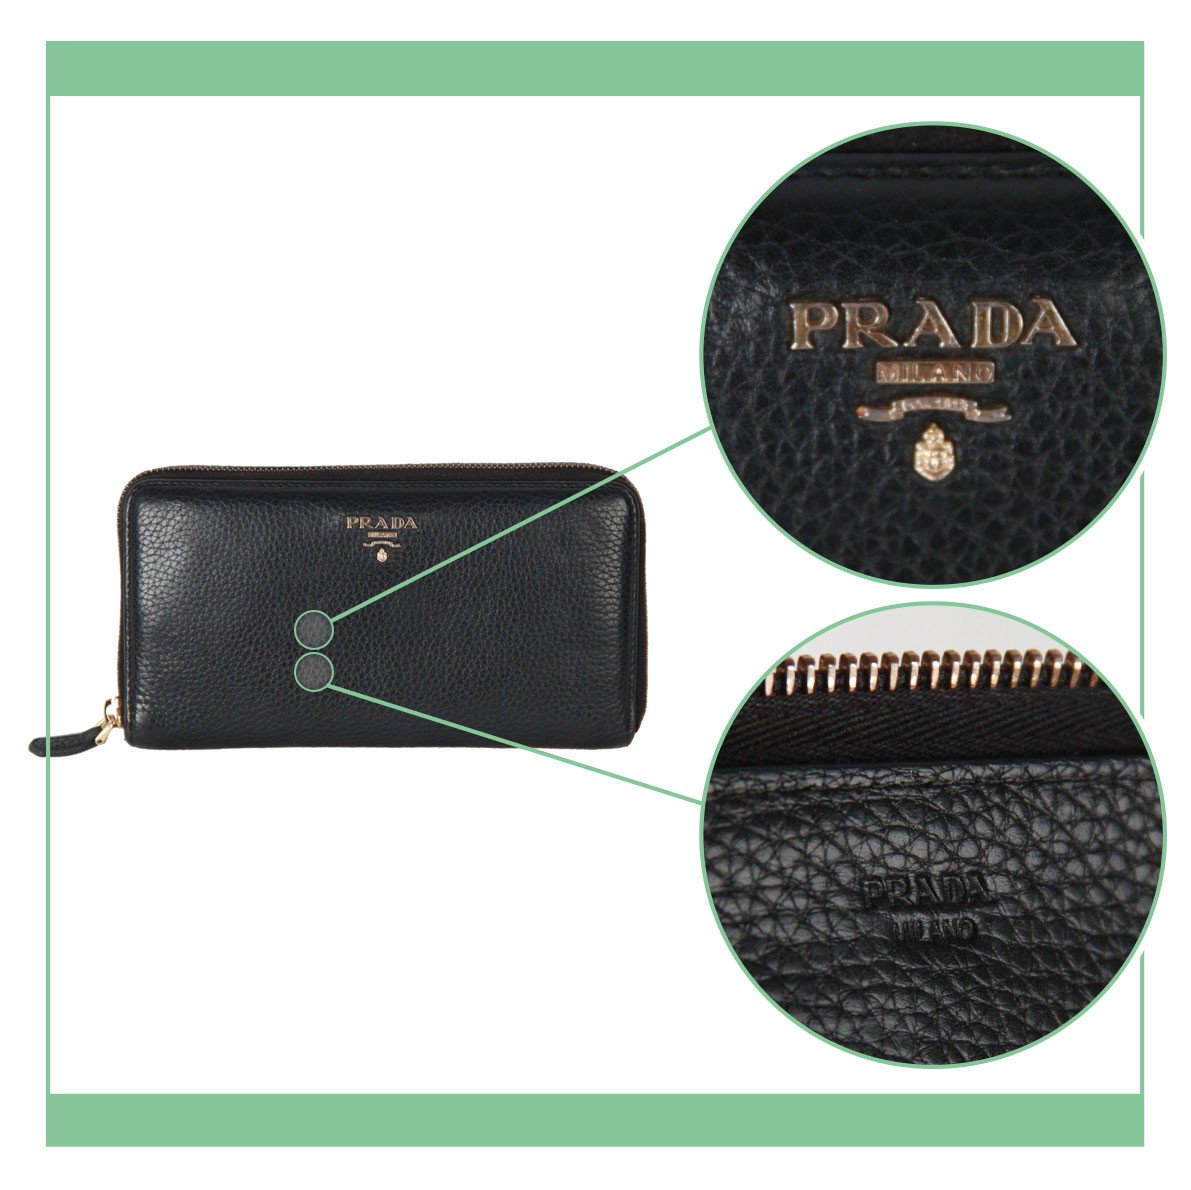 d40b2618dc7187 Check carefully and compare logos and fonts with the images we provide, and  the ones you can see from our Prada selection. Some models will have the  logo ...